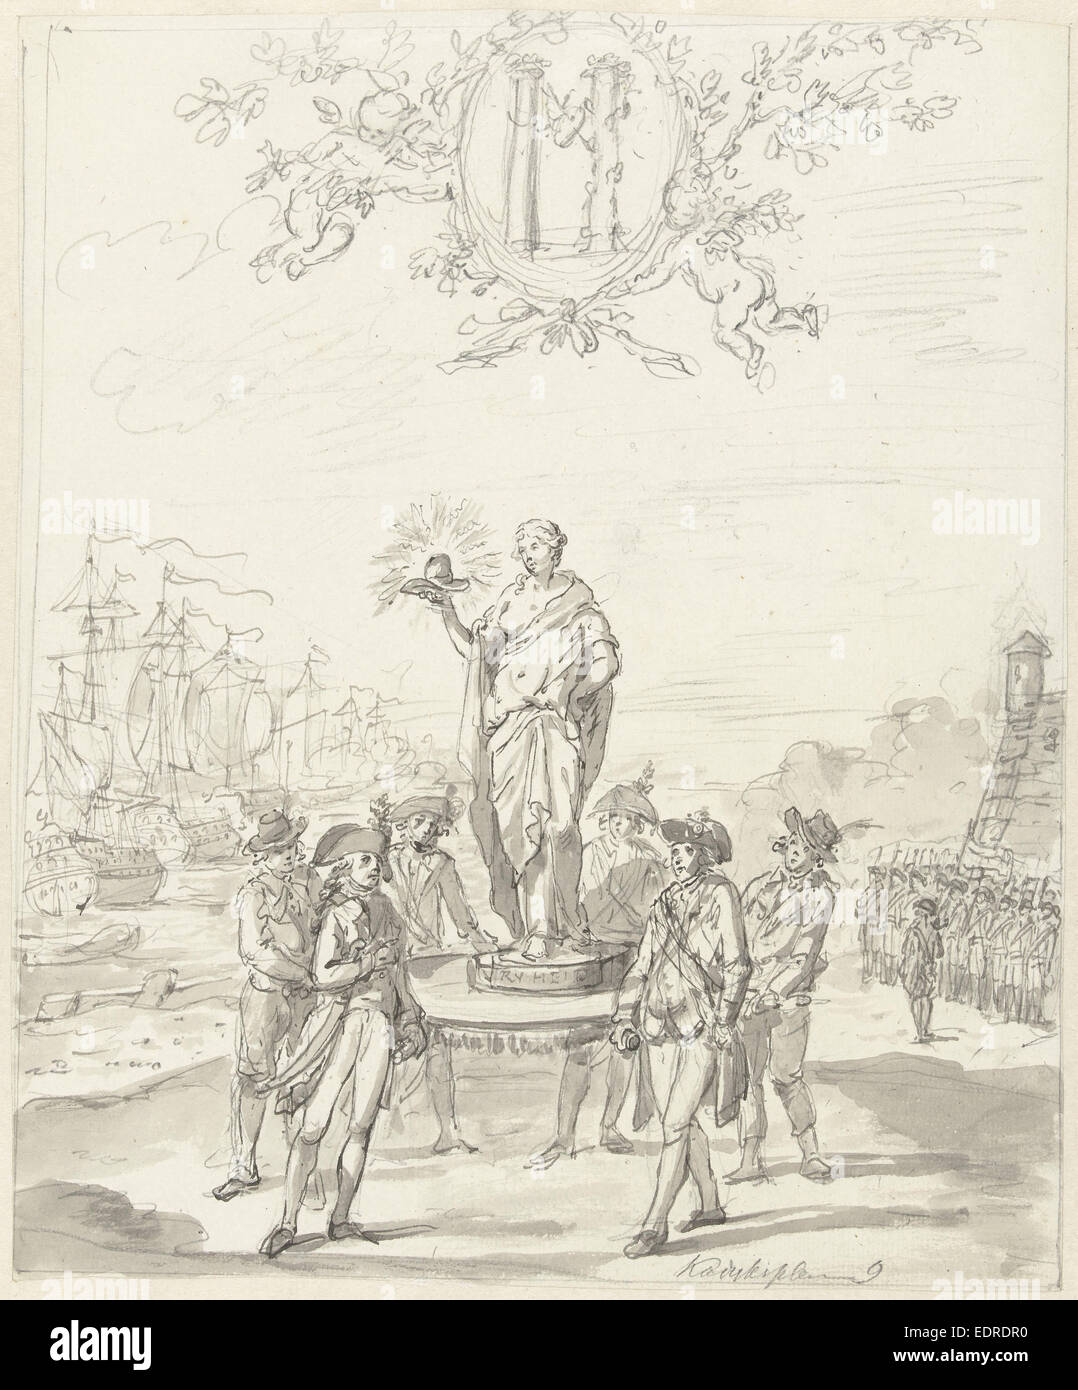 General Reinforcement, decoration on the Kadijksplein, 1795, Anonymous - Stock Image